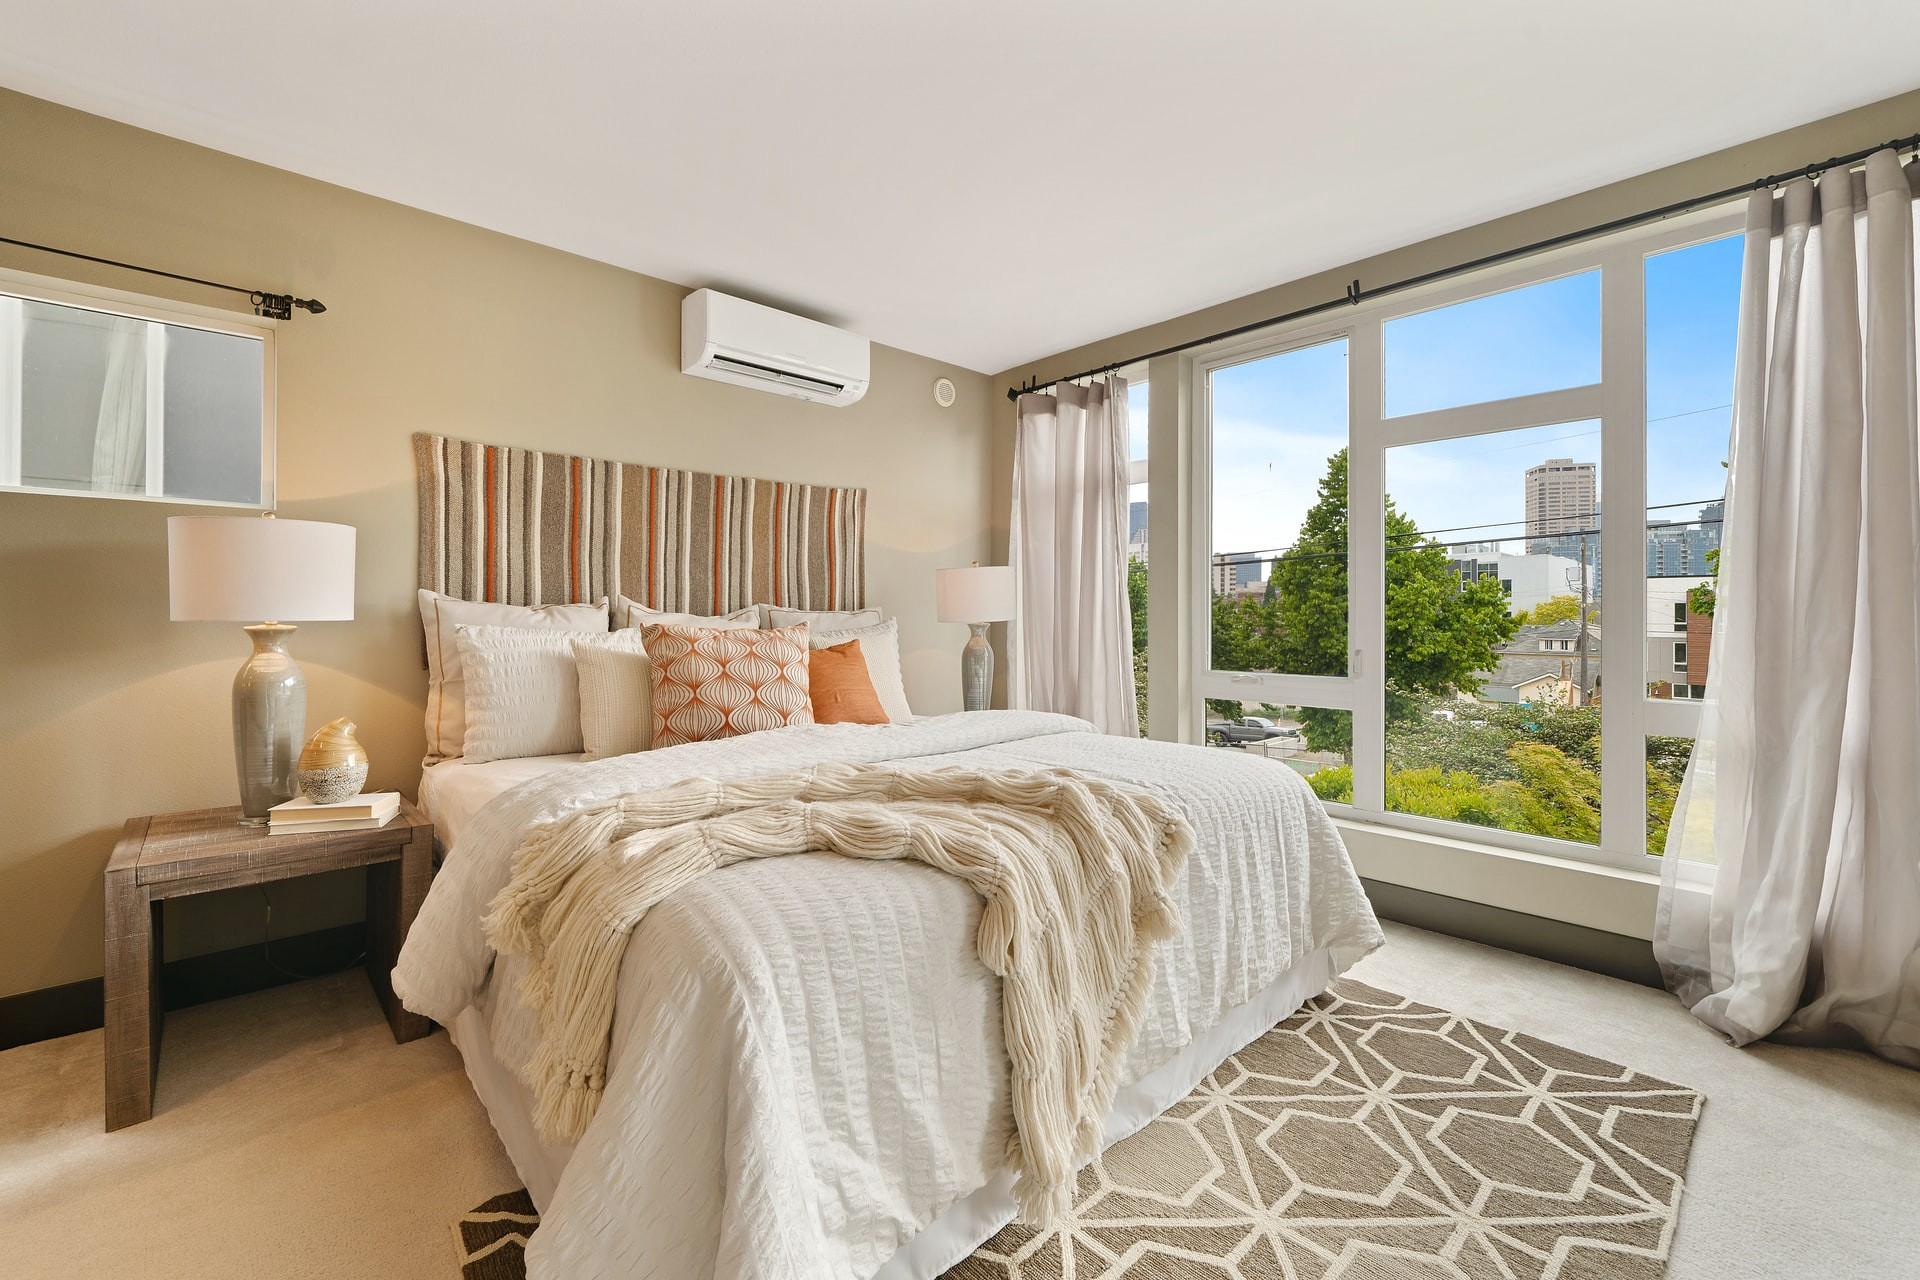 Large bedroom with double bed and a view of trees